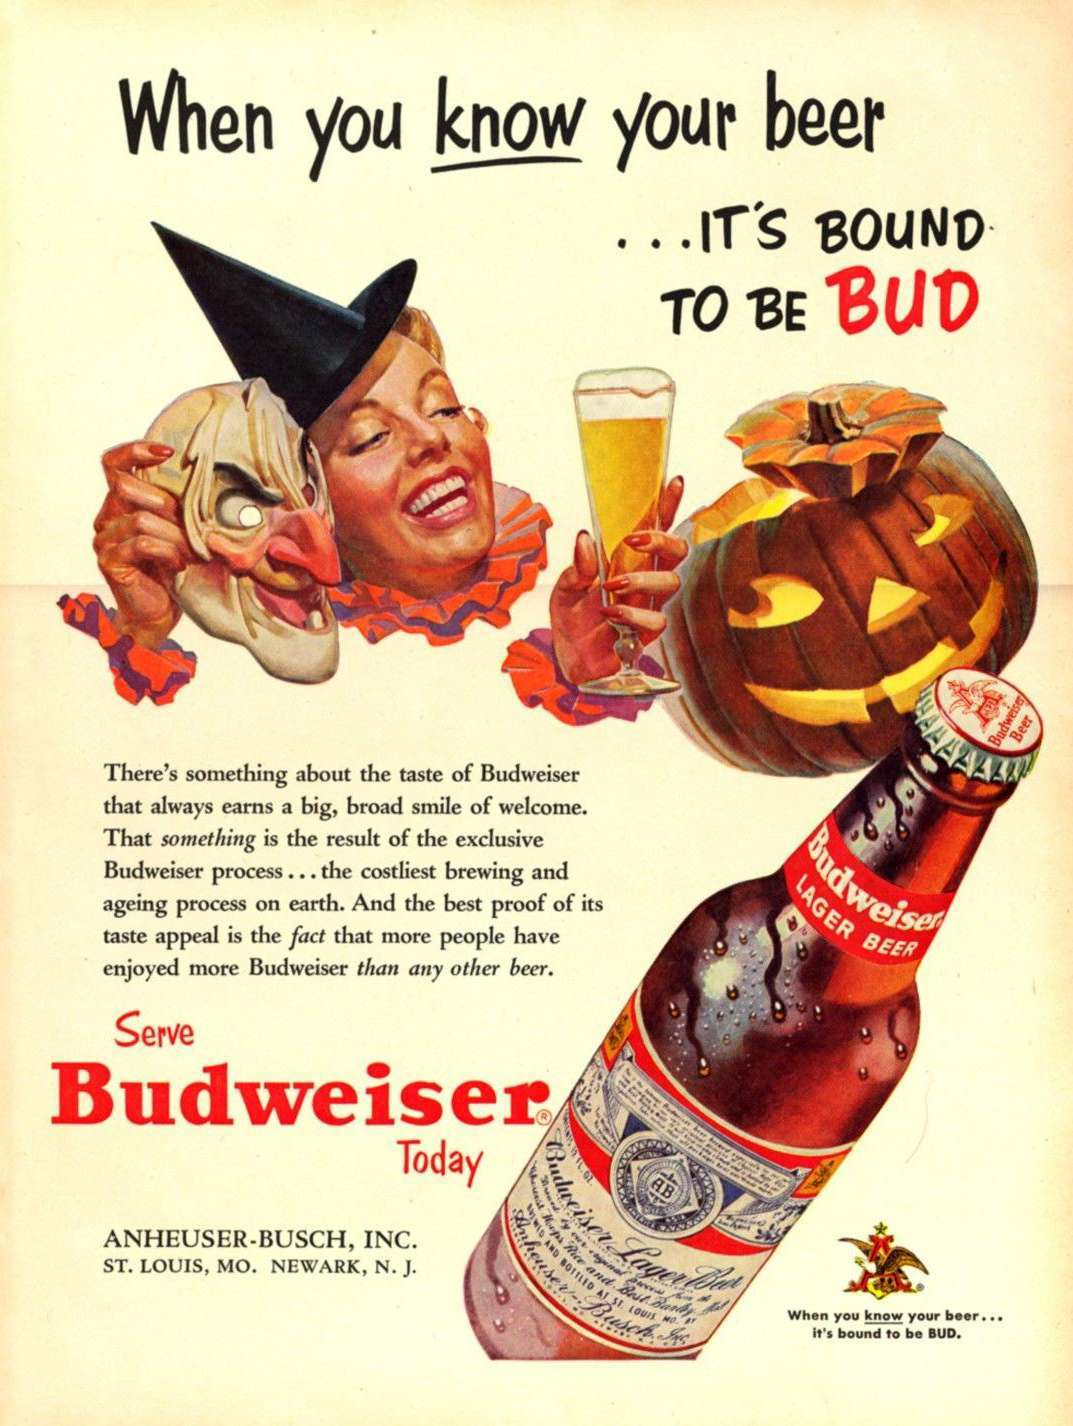 Samhainvertising Vintage Halloween Adverts